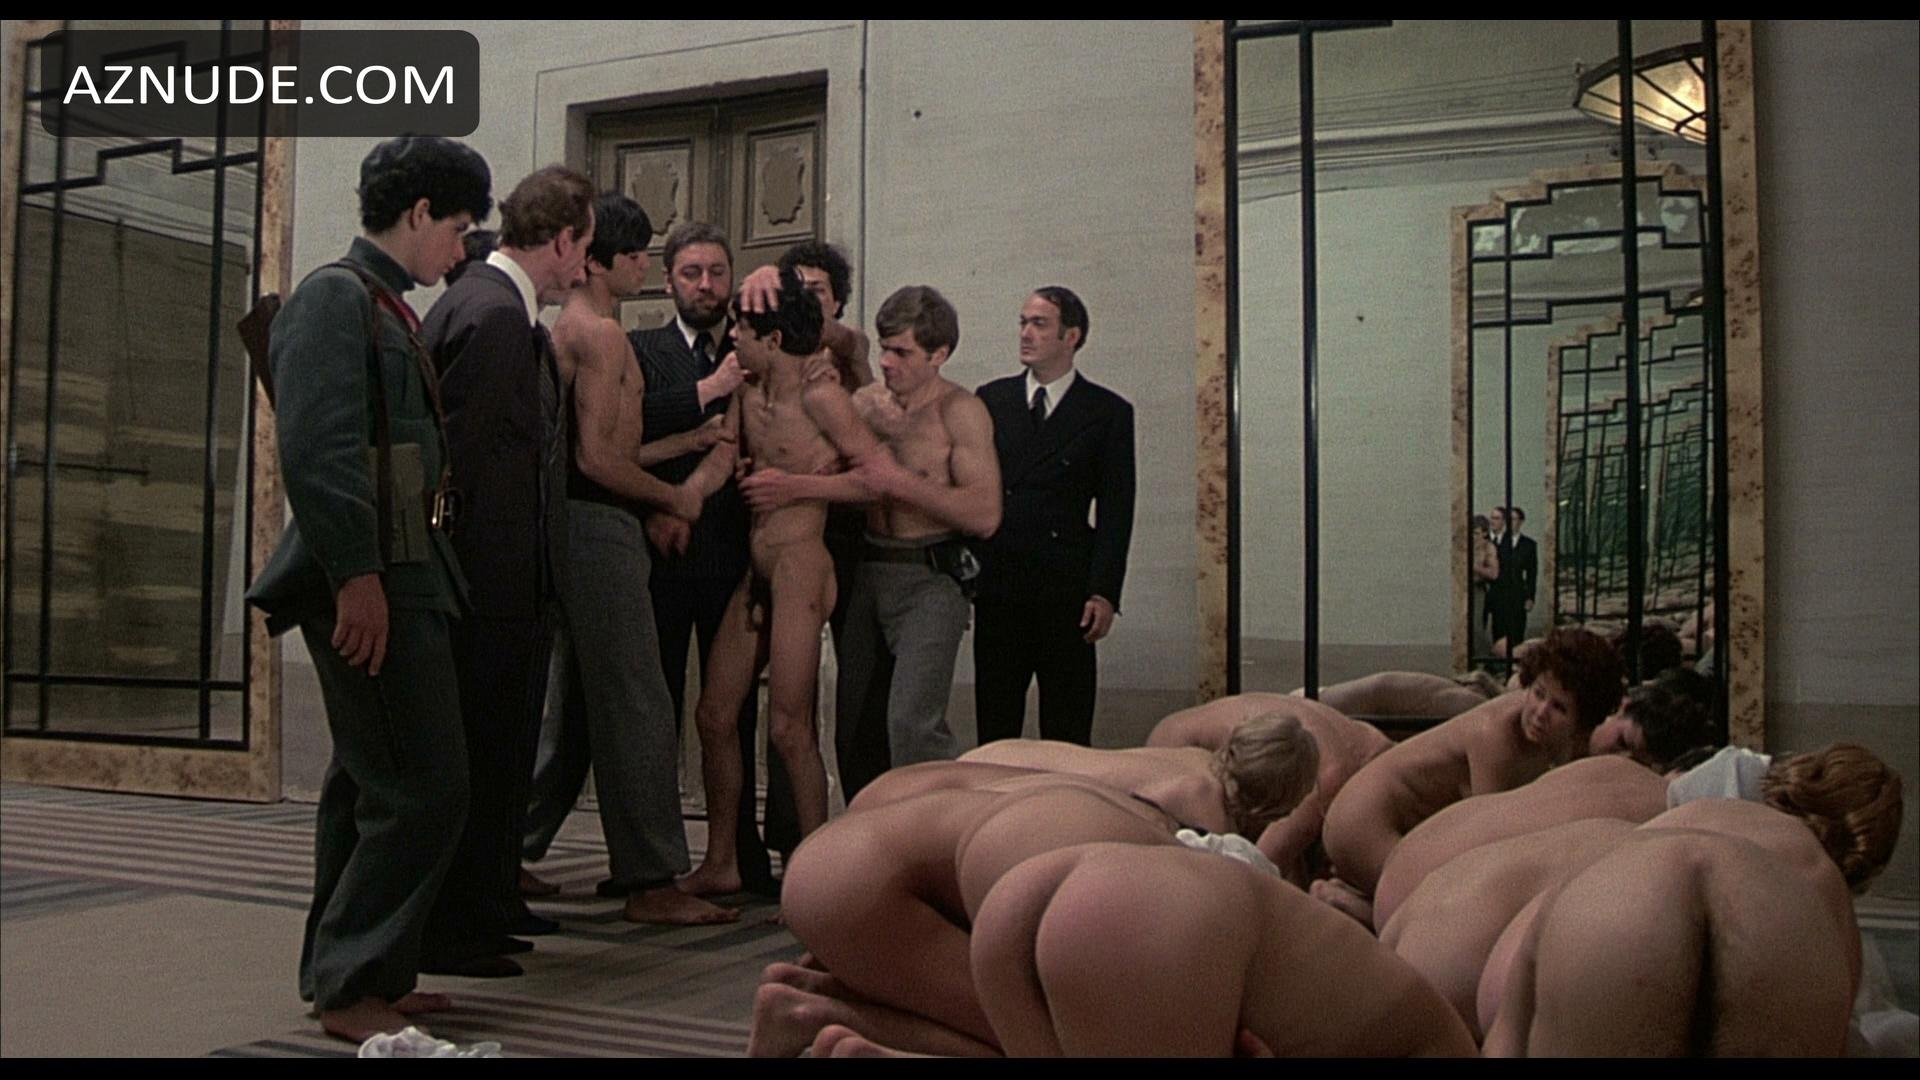 The most famous nude scene of all time, according to the skin imagemakers